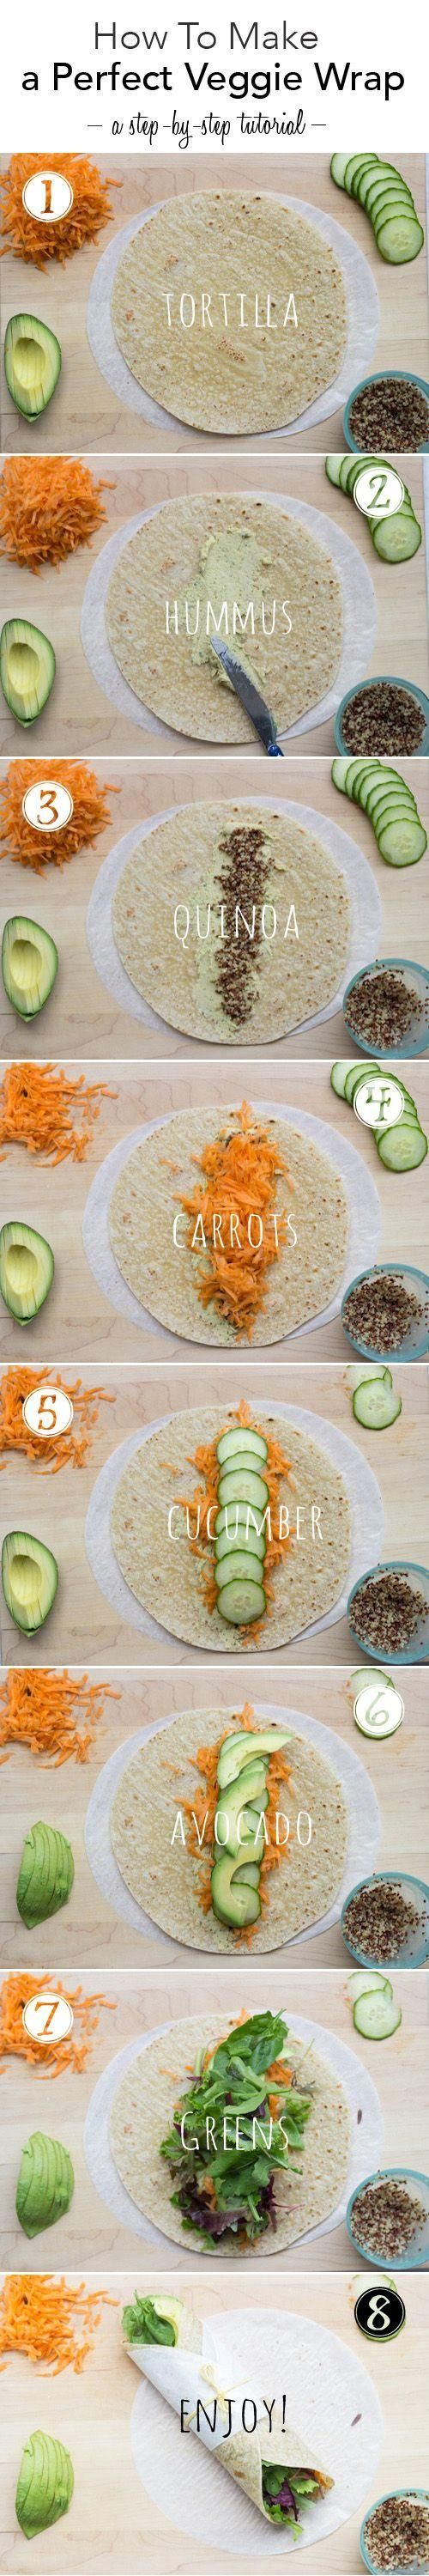 How to make the perfect veggie wraps.